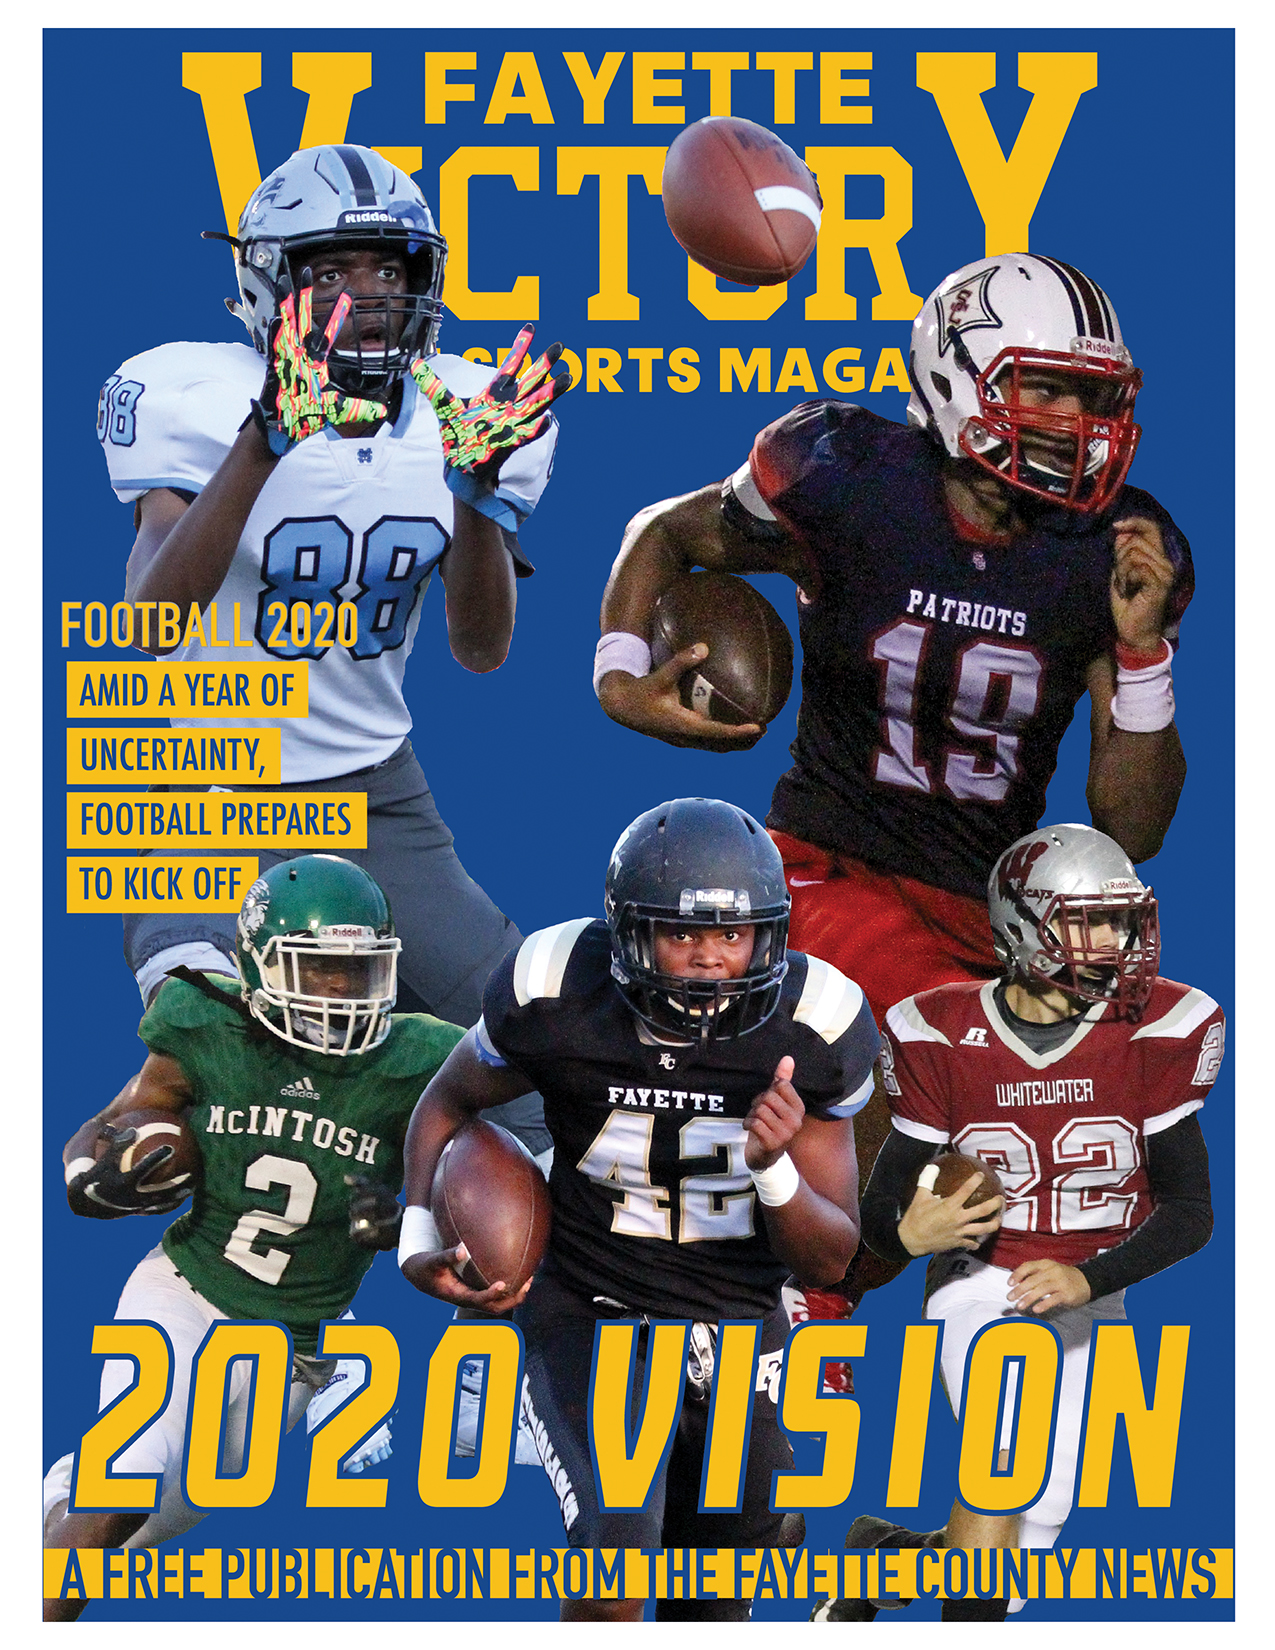 2020 Fayette Victory Football Issue